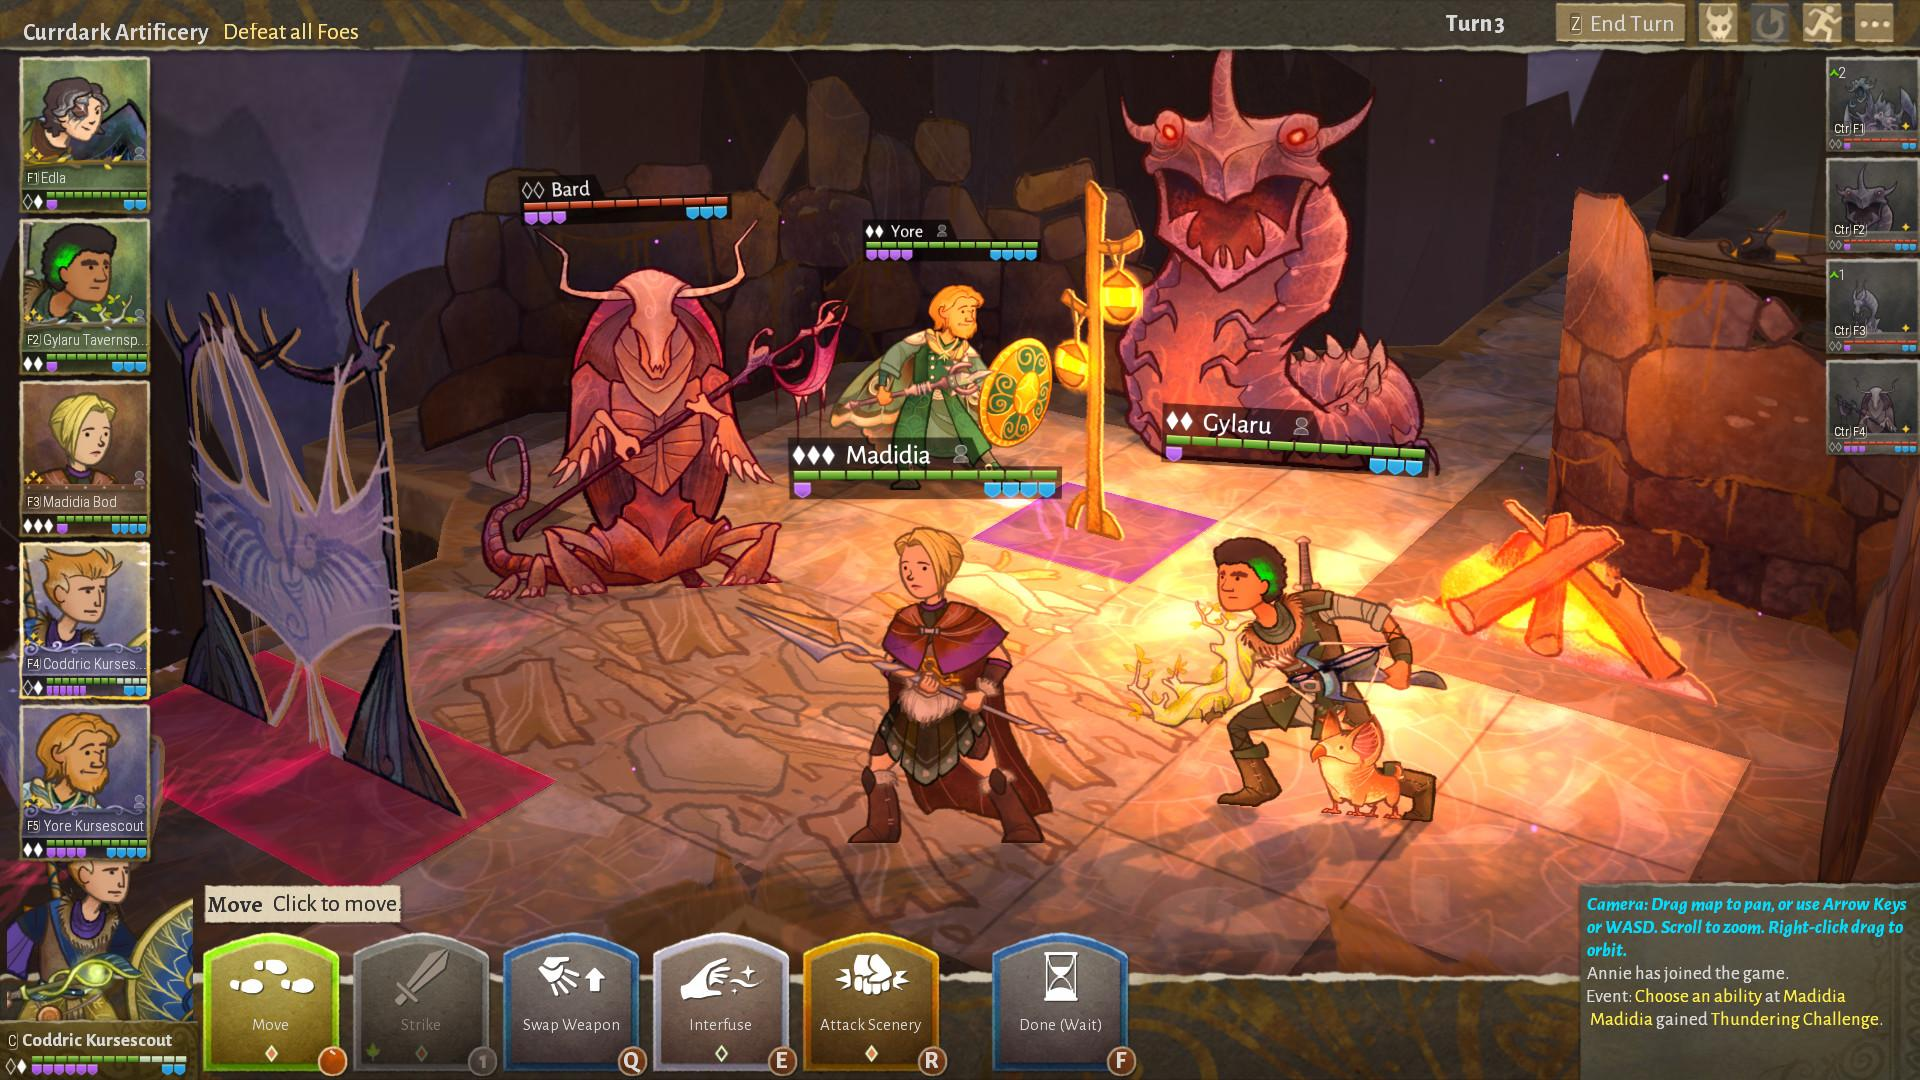 Wildermyth is a turn-based RPG that's heavily inspired by Dungeons and Dragons